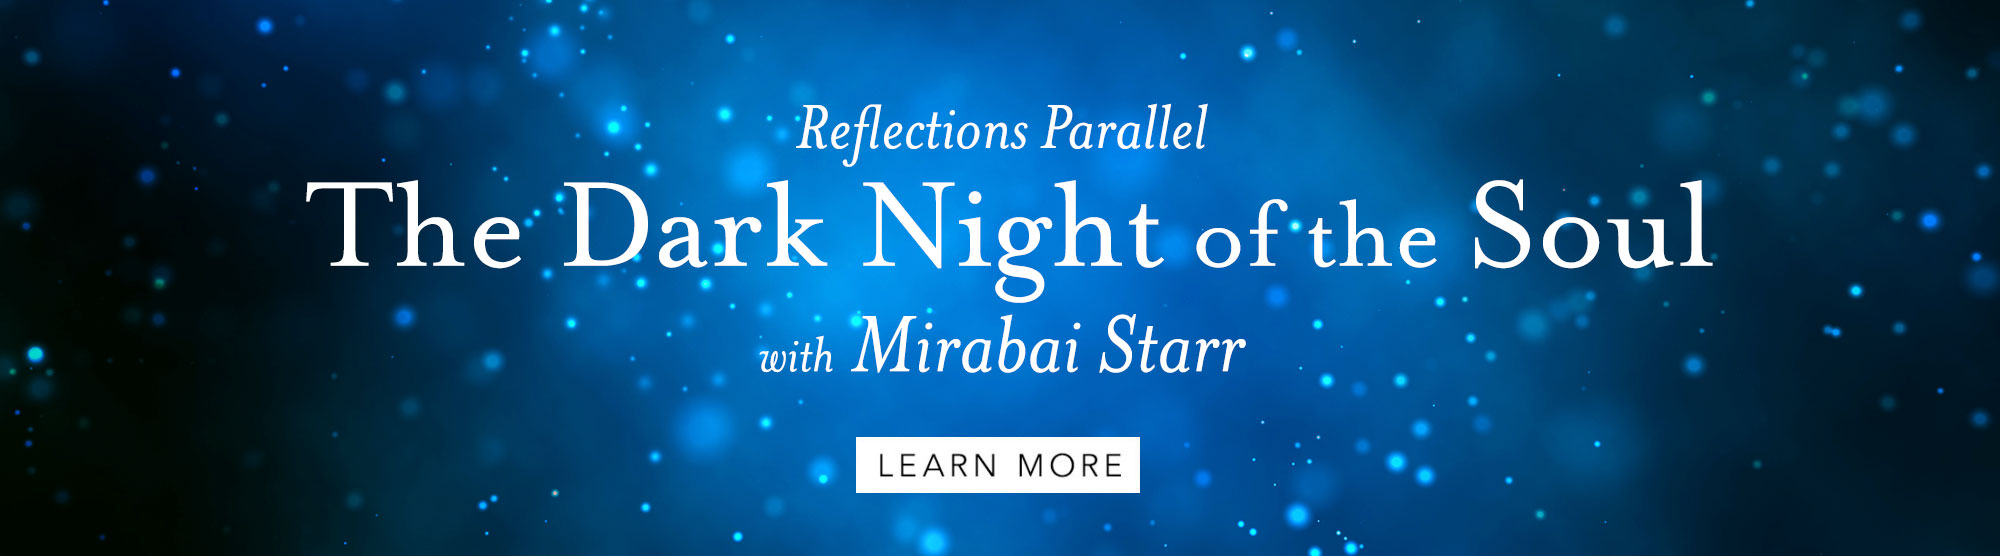 Reflections Parallel: The Dark Night of the Soul with Mirabai Starr